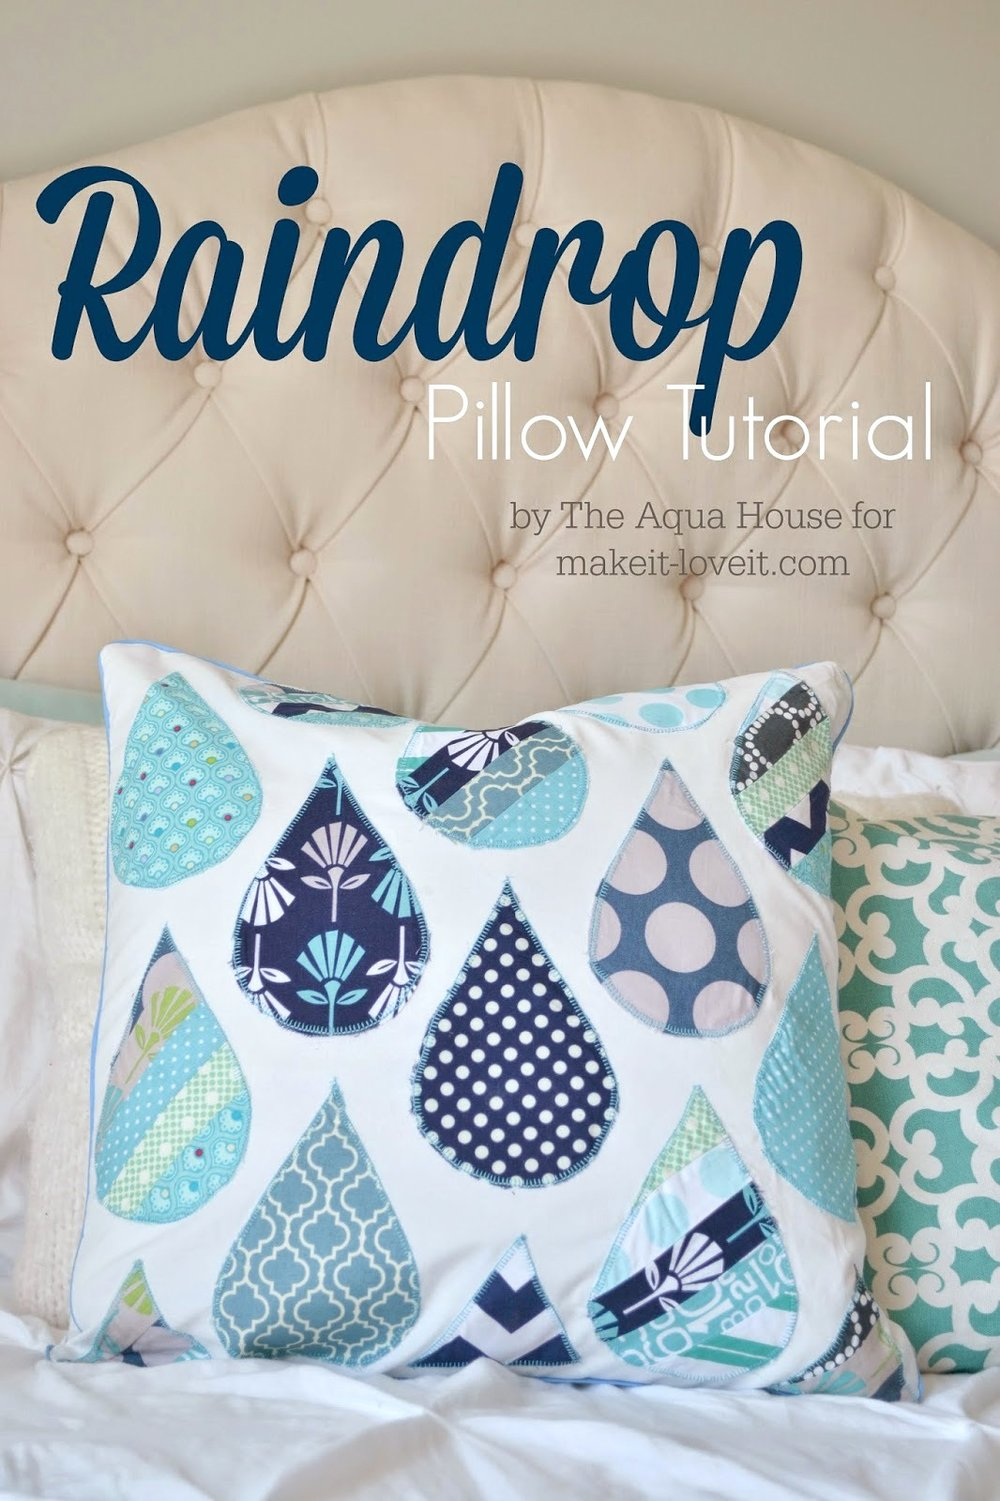 Raindrop Pillow Tutorial from Make It & Love It